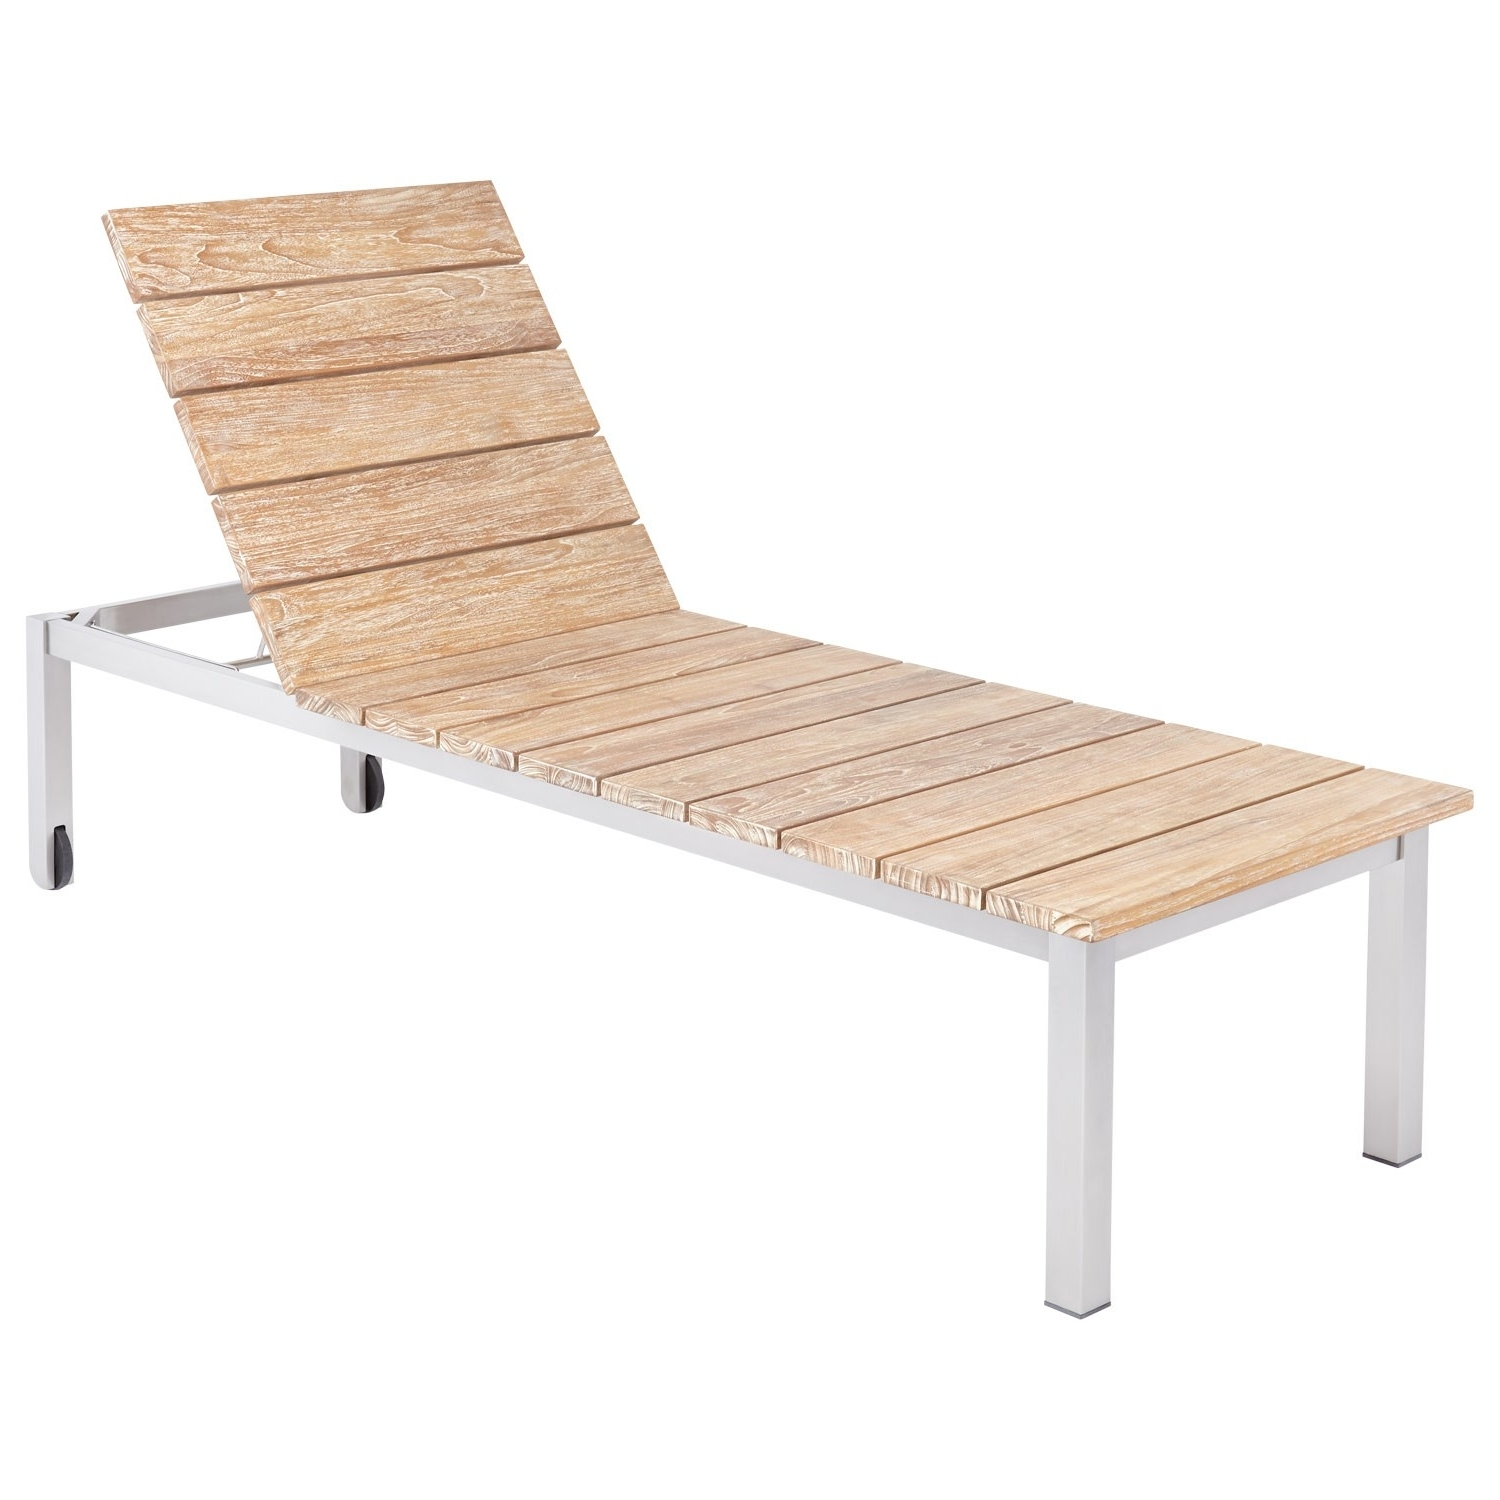 Fashionable Macon 3 Piece Teak Outdoor Chaise Lounge Chair Set – Whitewash For White Outdoor Chaise Lounges (View 3 of 15)